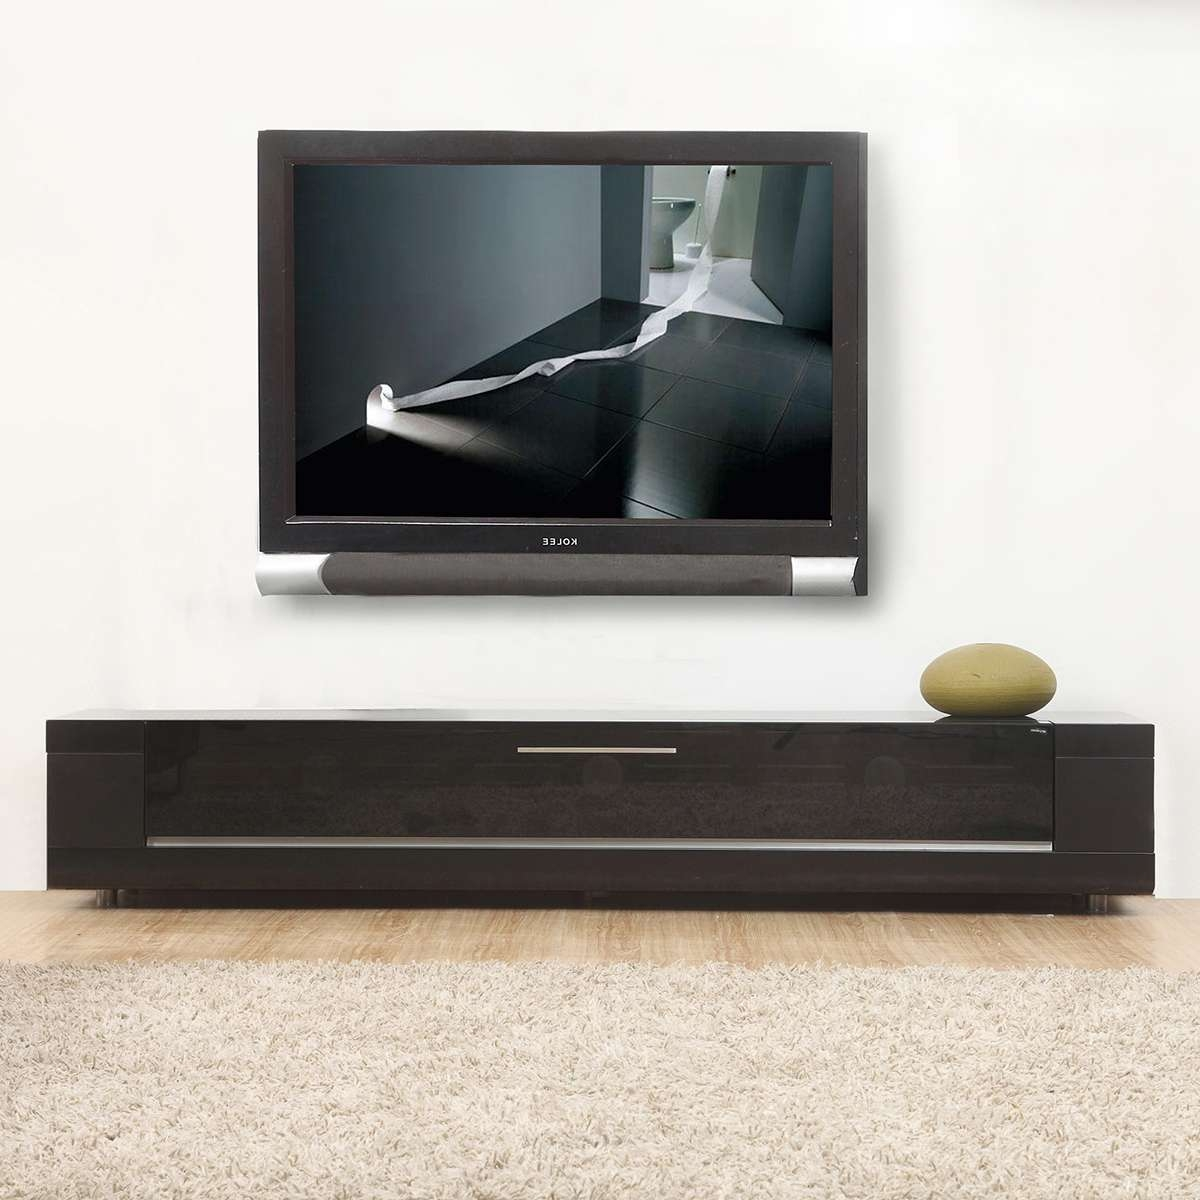 Tv Television Stands 71 & Wider At Dynamic Home Decor Intended For Contemporary Black Tv Stands (View 13 of 15)